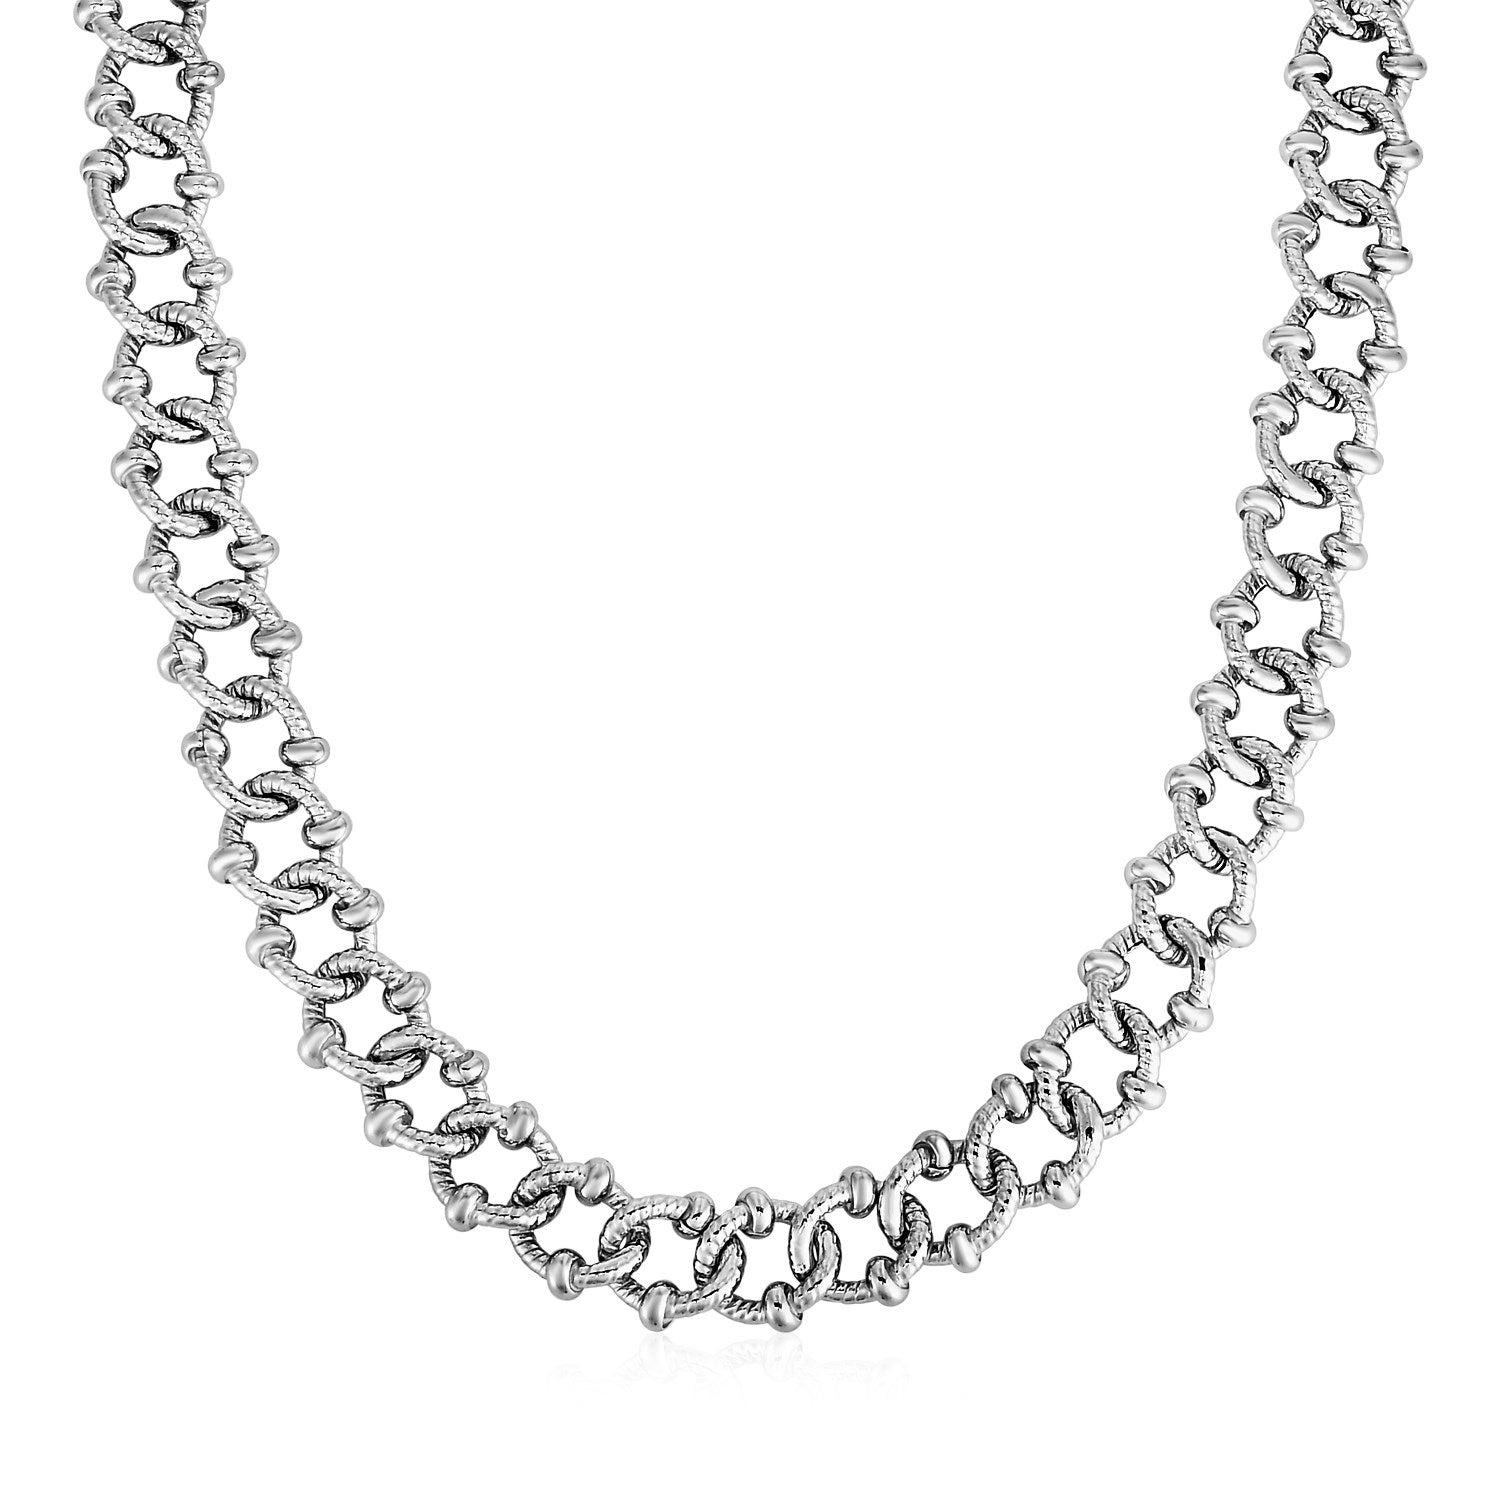 Unique Hollywood Style Textured Embellished Link Necklace in Sterling Silver